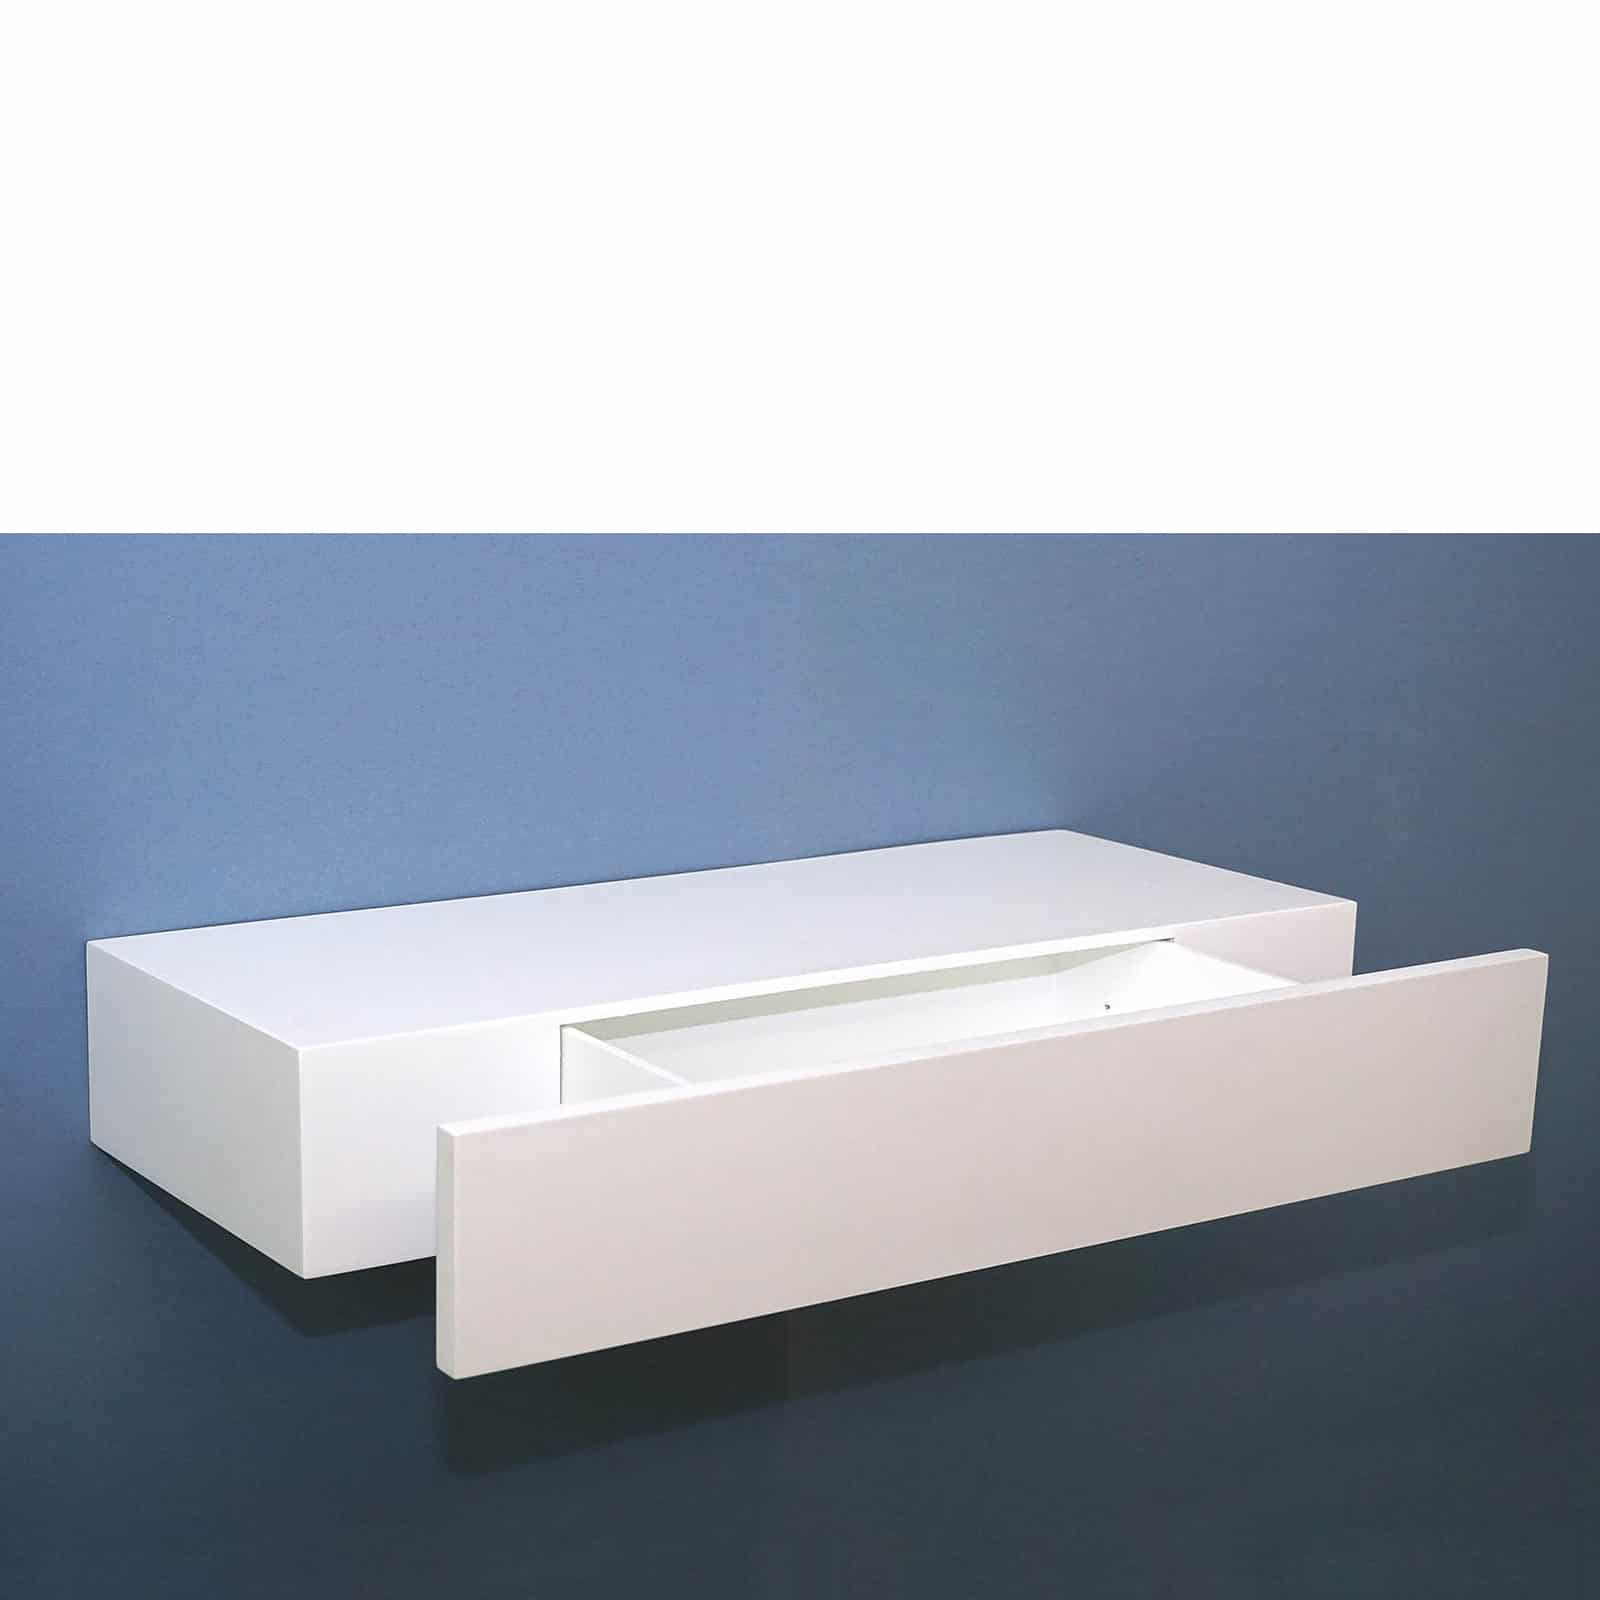 floating shelf with drawer white mastershelf open empty web high gloss black shoe display rack individual glass shelves build cabinet adjustable supports outdoor shelving unit